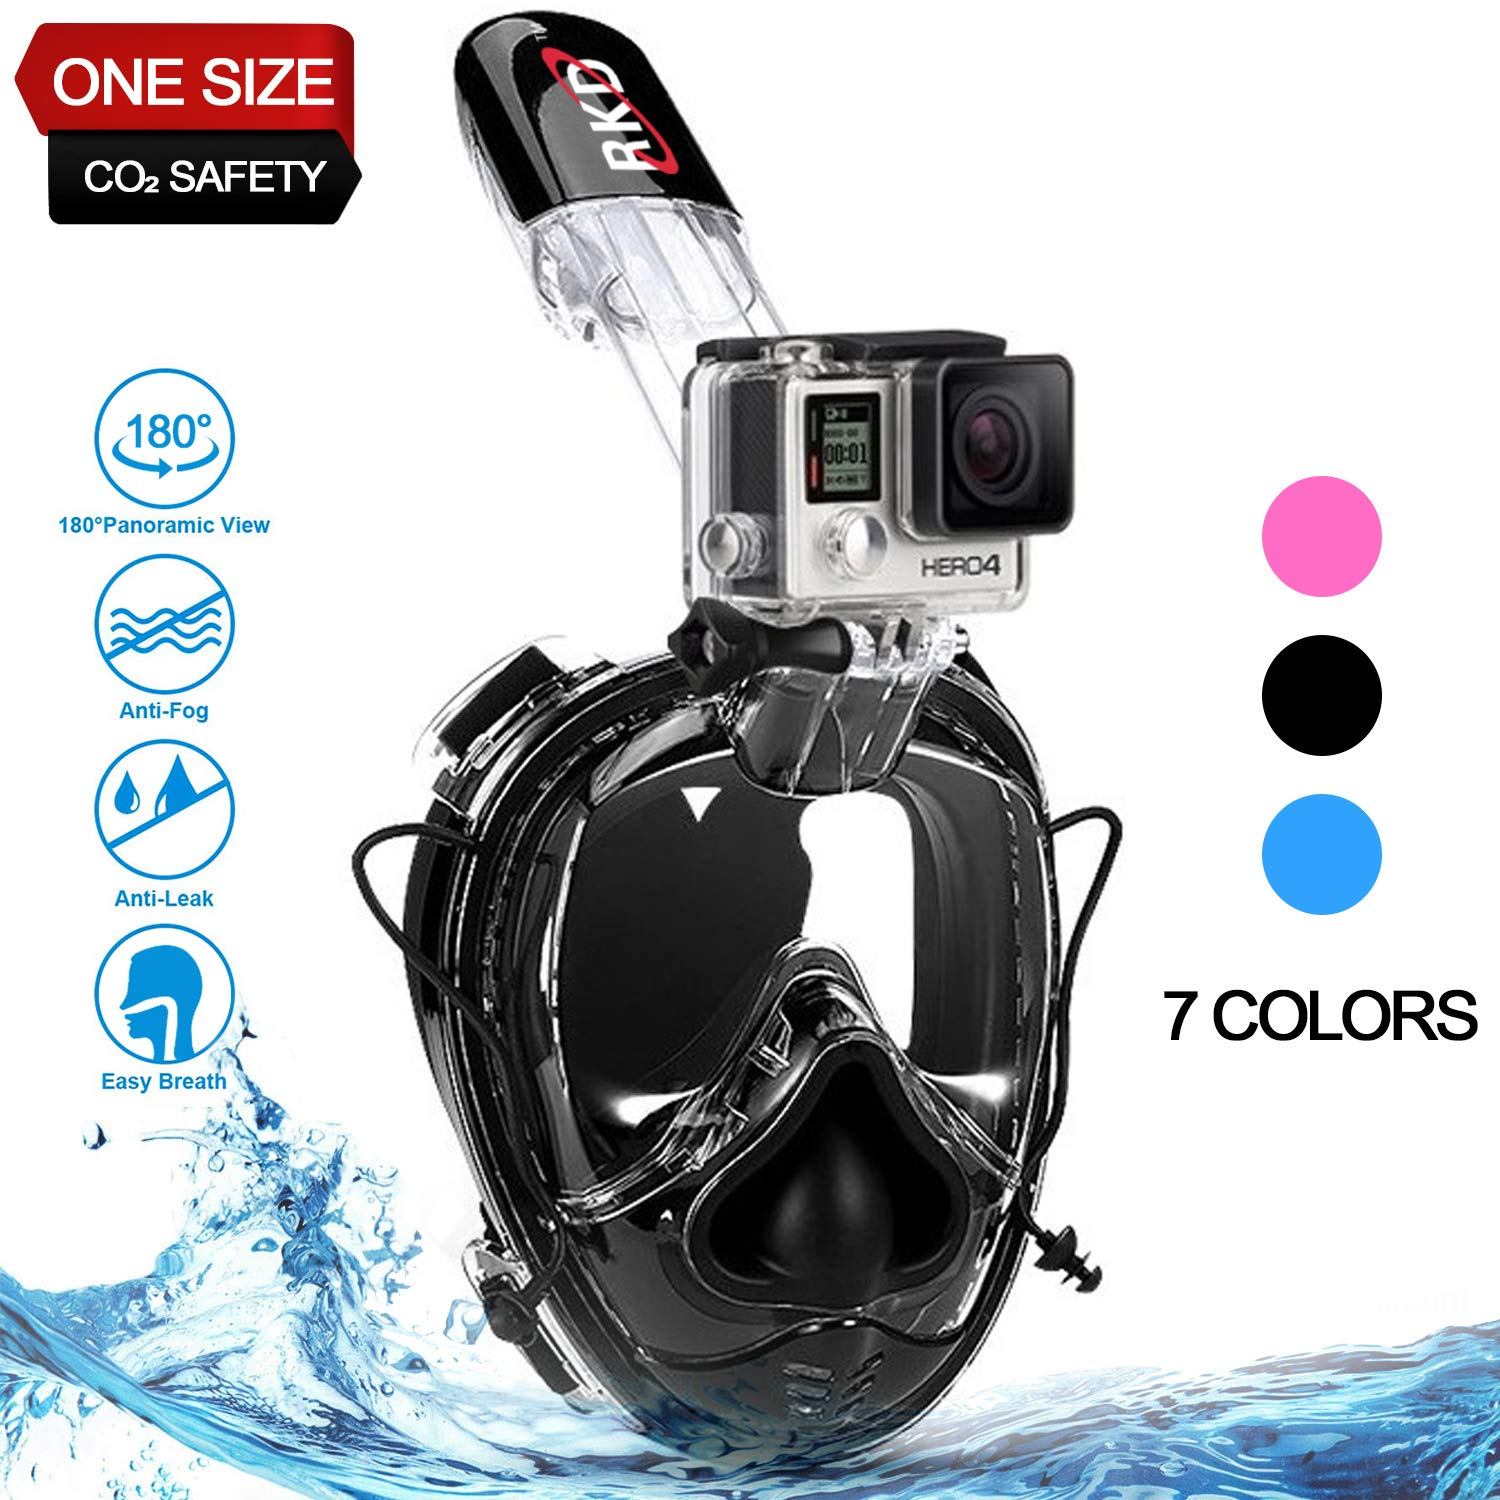 Full Face Snorkel Mask,Snorkeling Mask,180°Panoramic View,Free Breathing Anti-Fog Anti-Leak Full Face Snorkeling Mask with Go-pro Mount,Against CO₂ Build-Up,One Size for Kids and Adults (All Black) by RKD